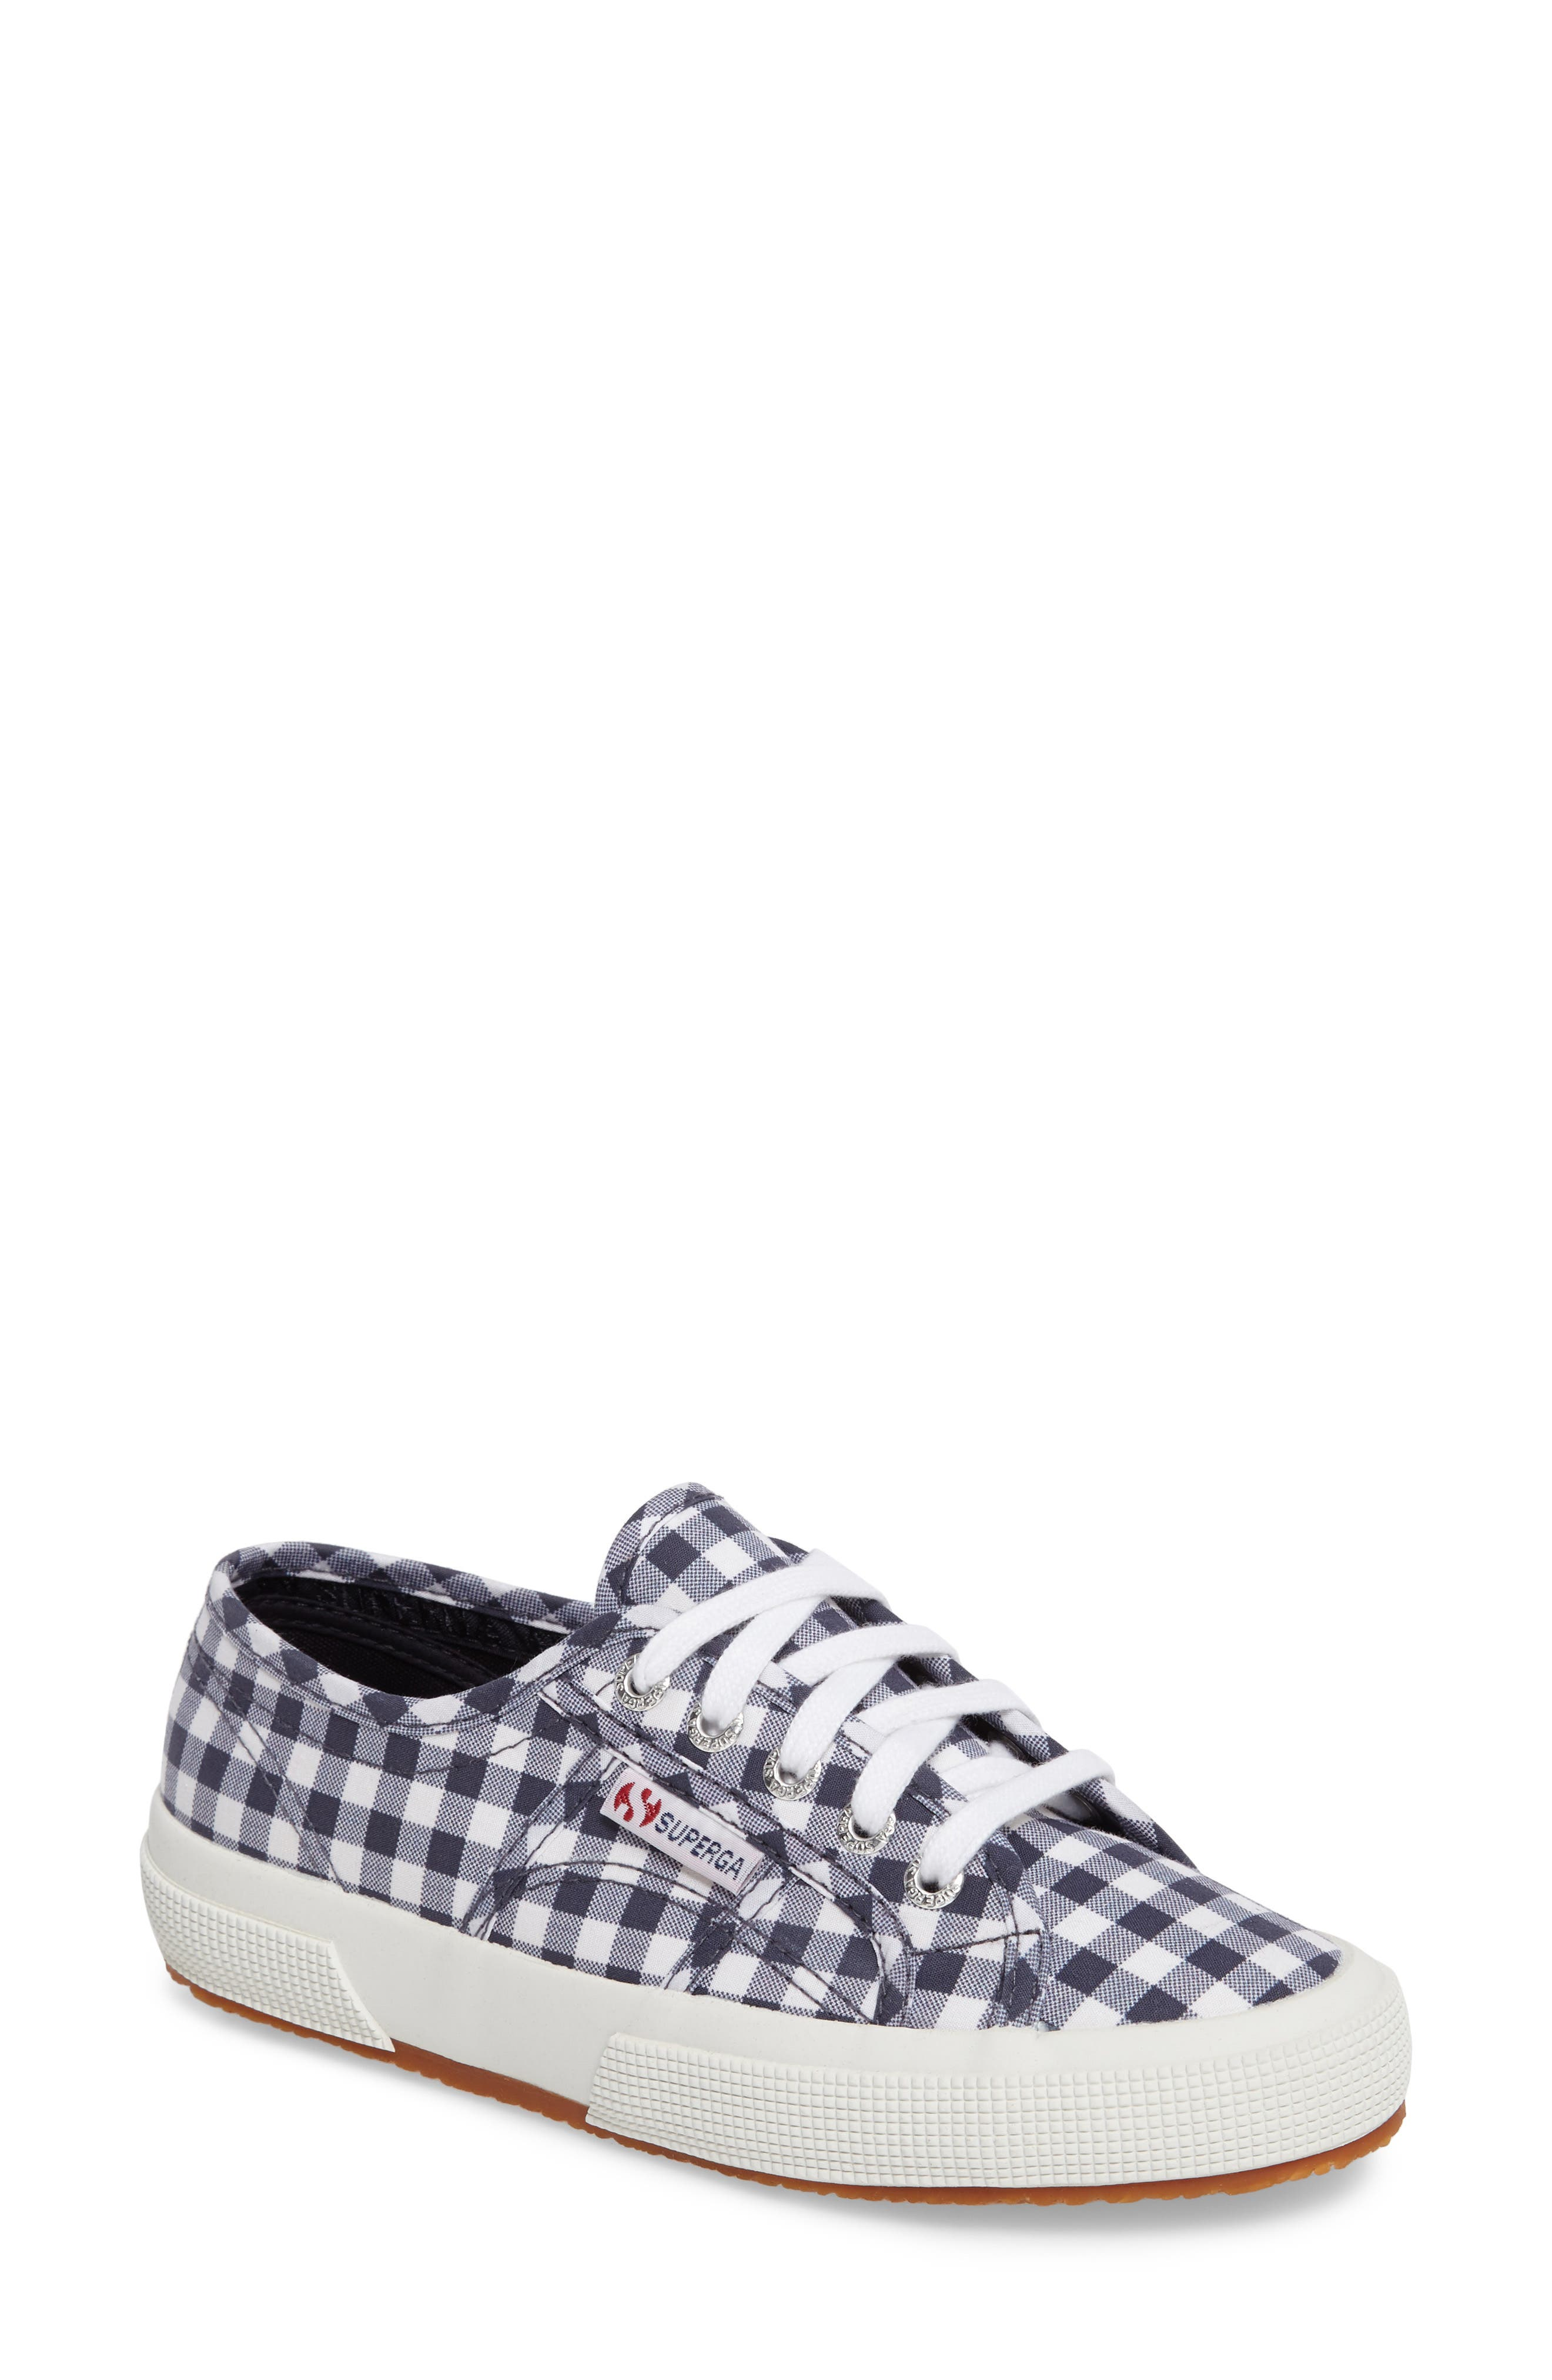 Superga 2750 Calico Sneaker (Women)